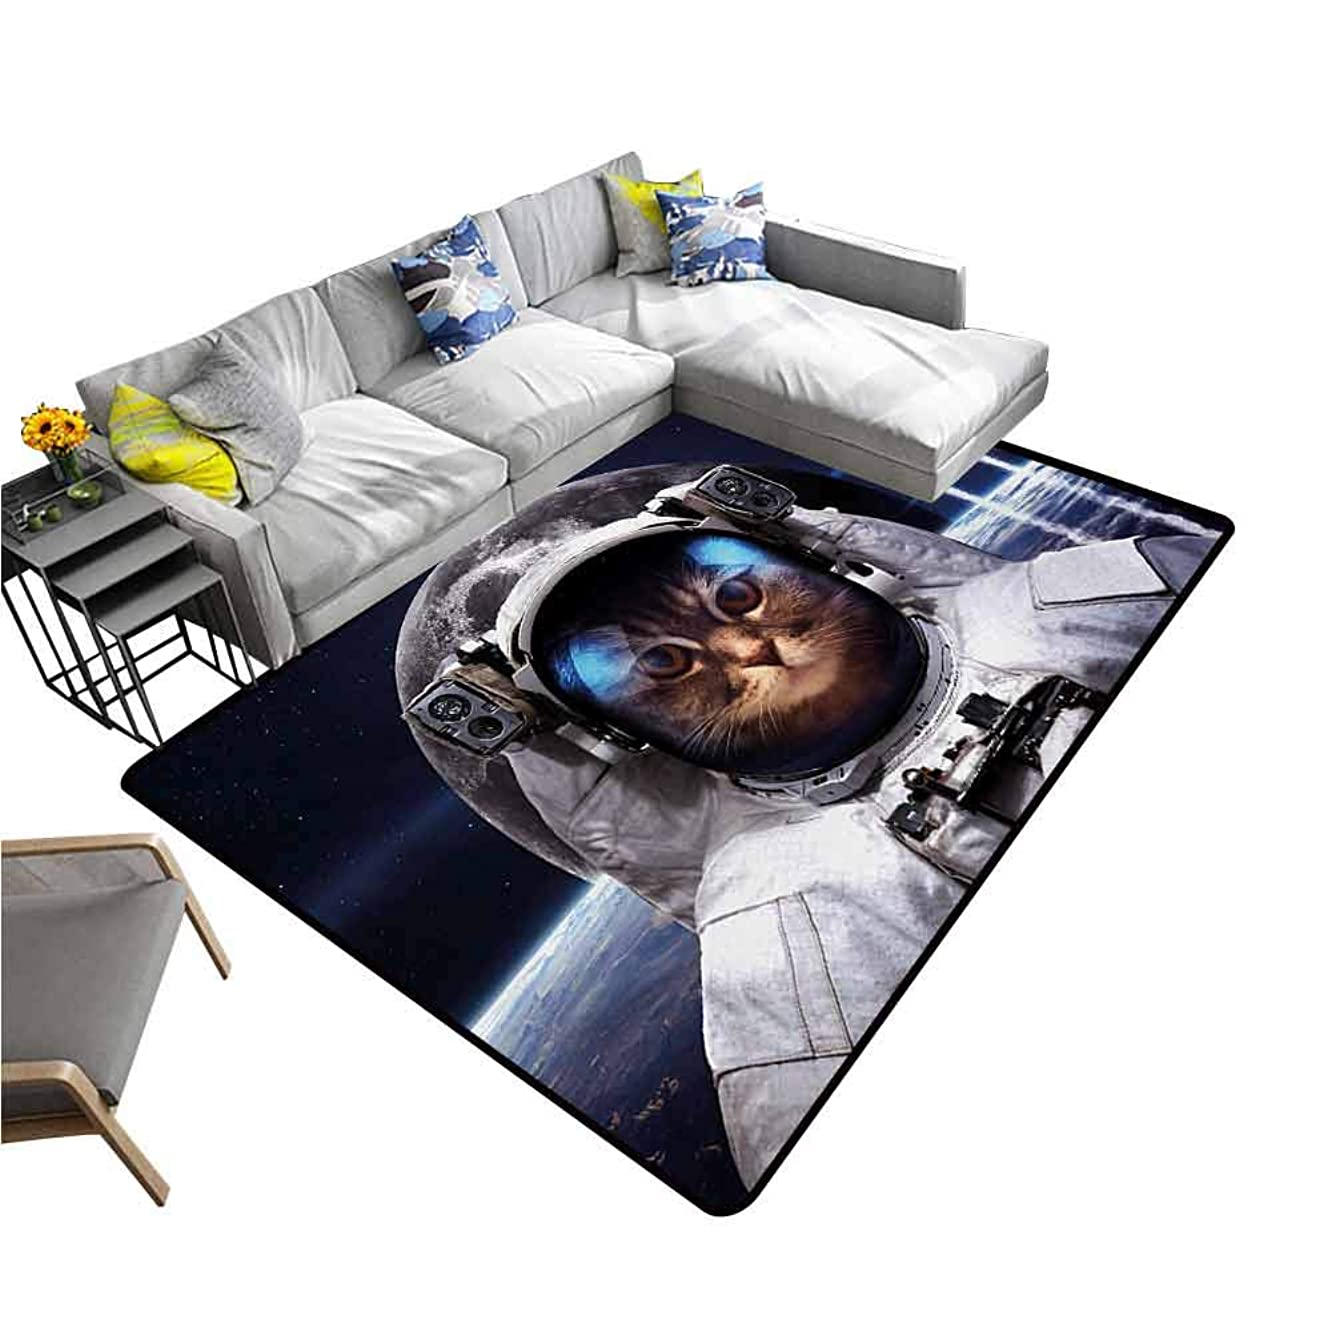 Bathroom Rug Kitchen Carpet Space Cat,Cat in Cosmonaut Outer Space Clothes in Cosmos Travel with Rocket,Navy Blue White and Red 36